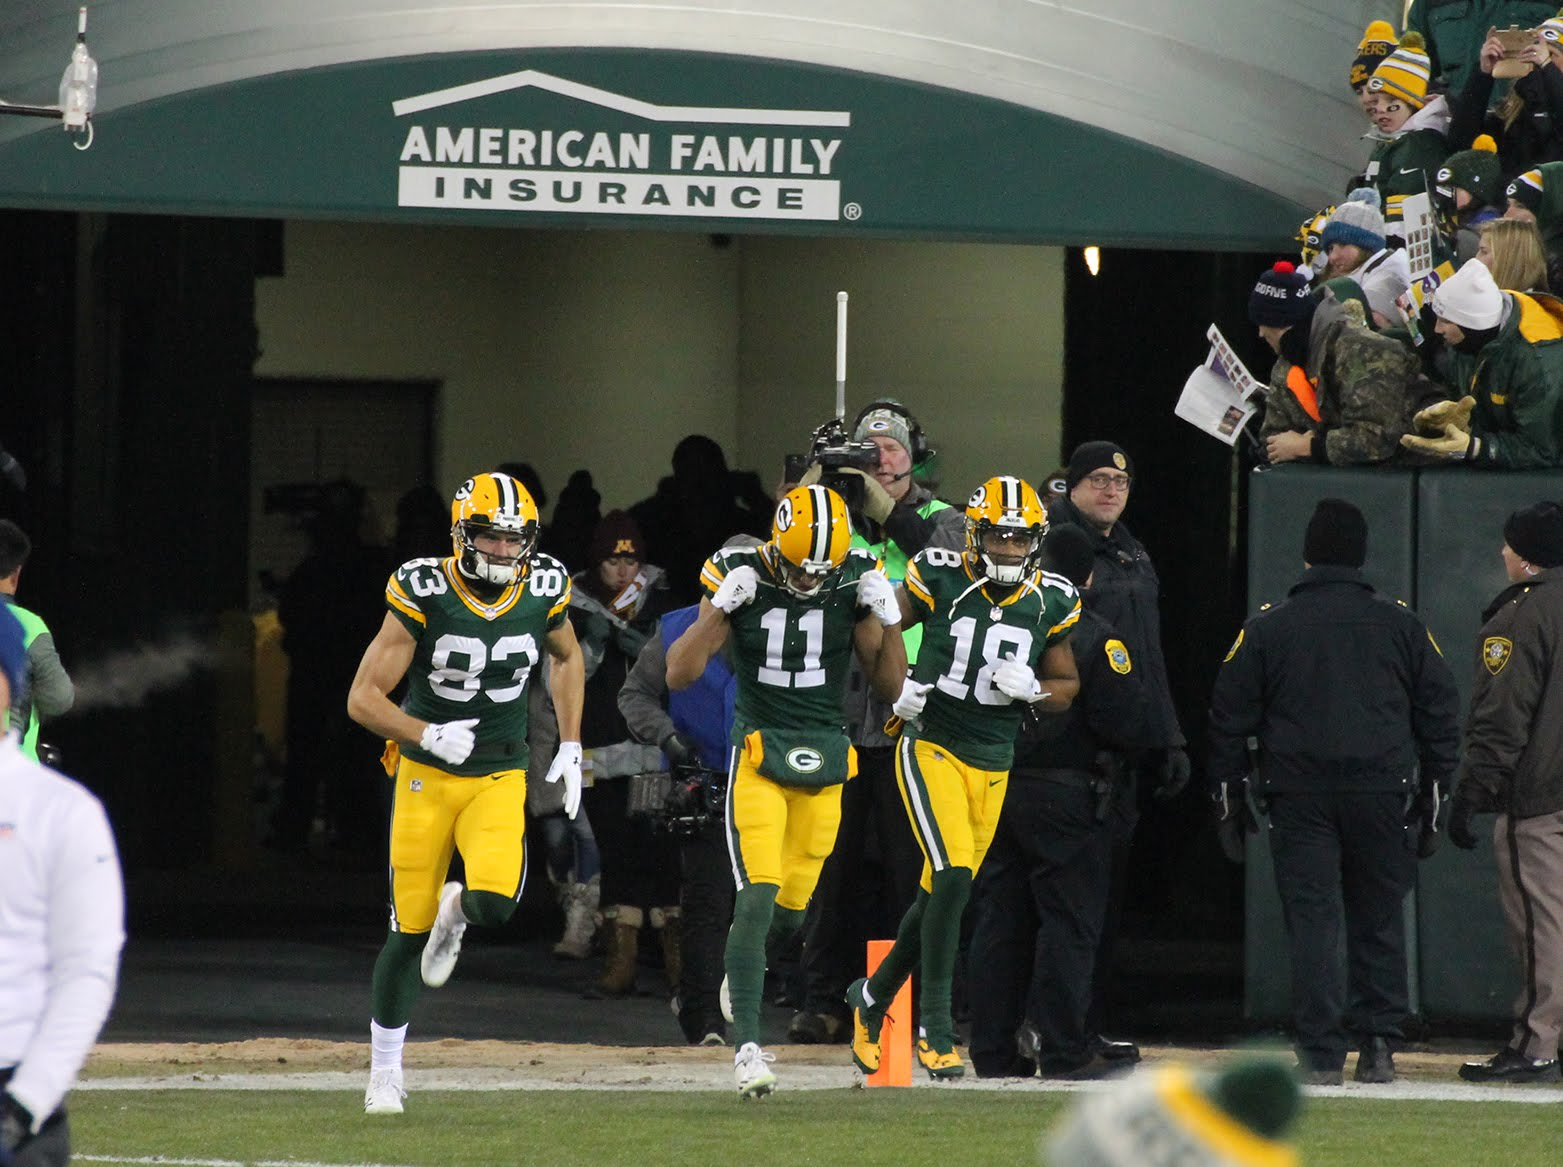 wr jeff janis 83 wr pr trevor davis 11 and wr randall cobb 18 come out to warm up warming up was a relative term on this day